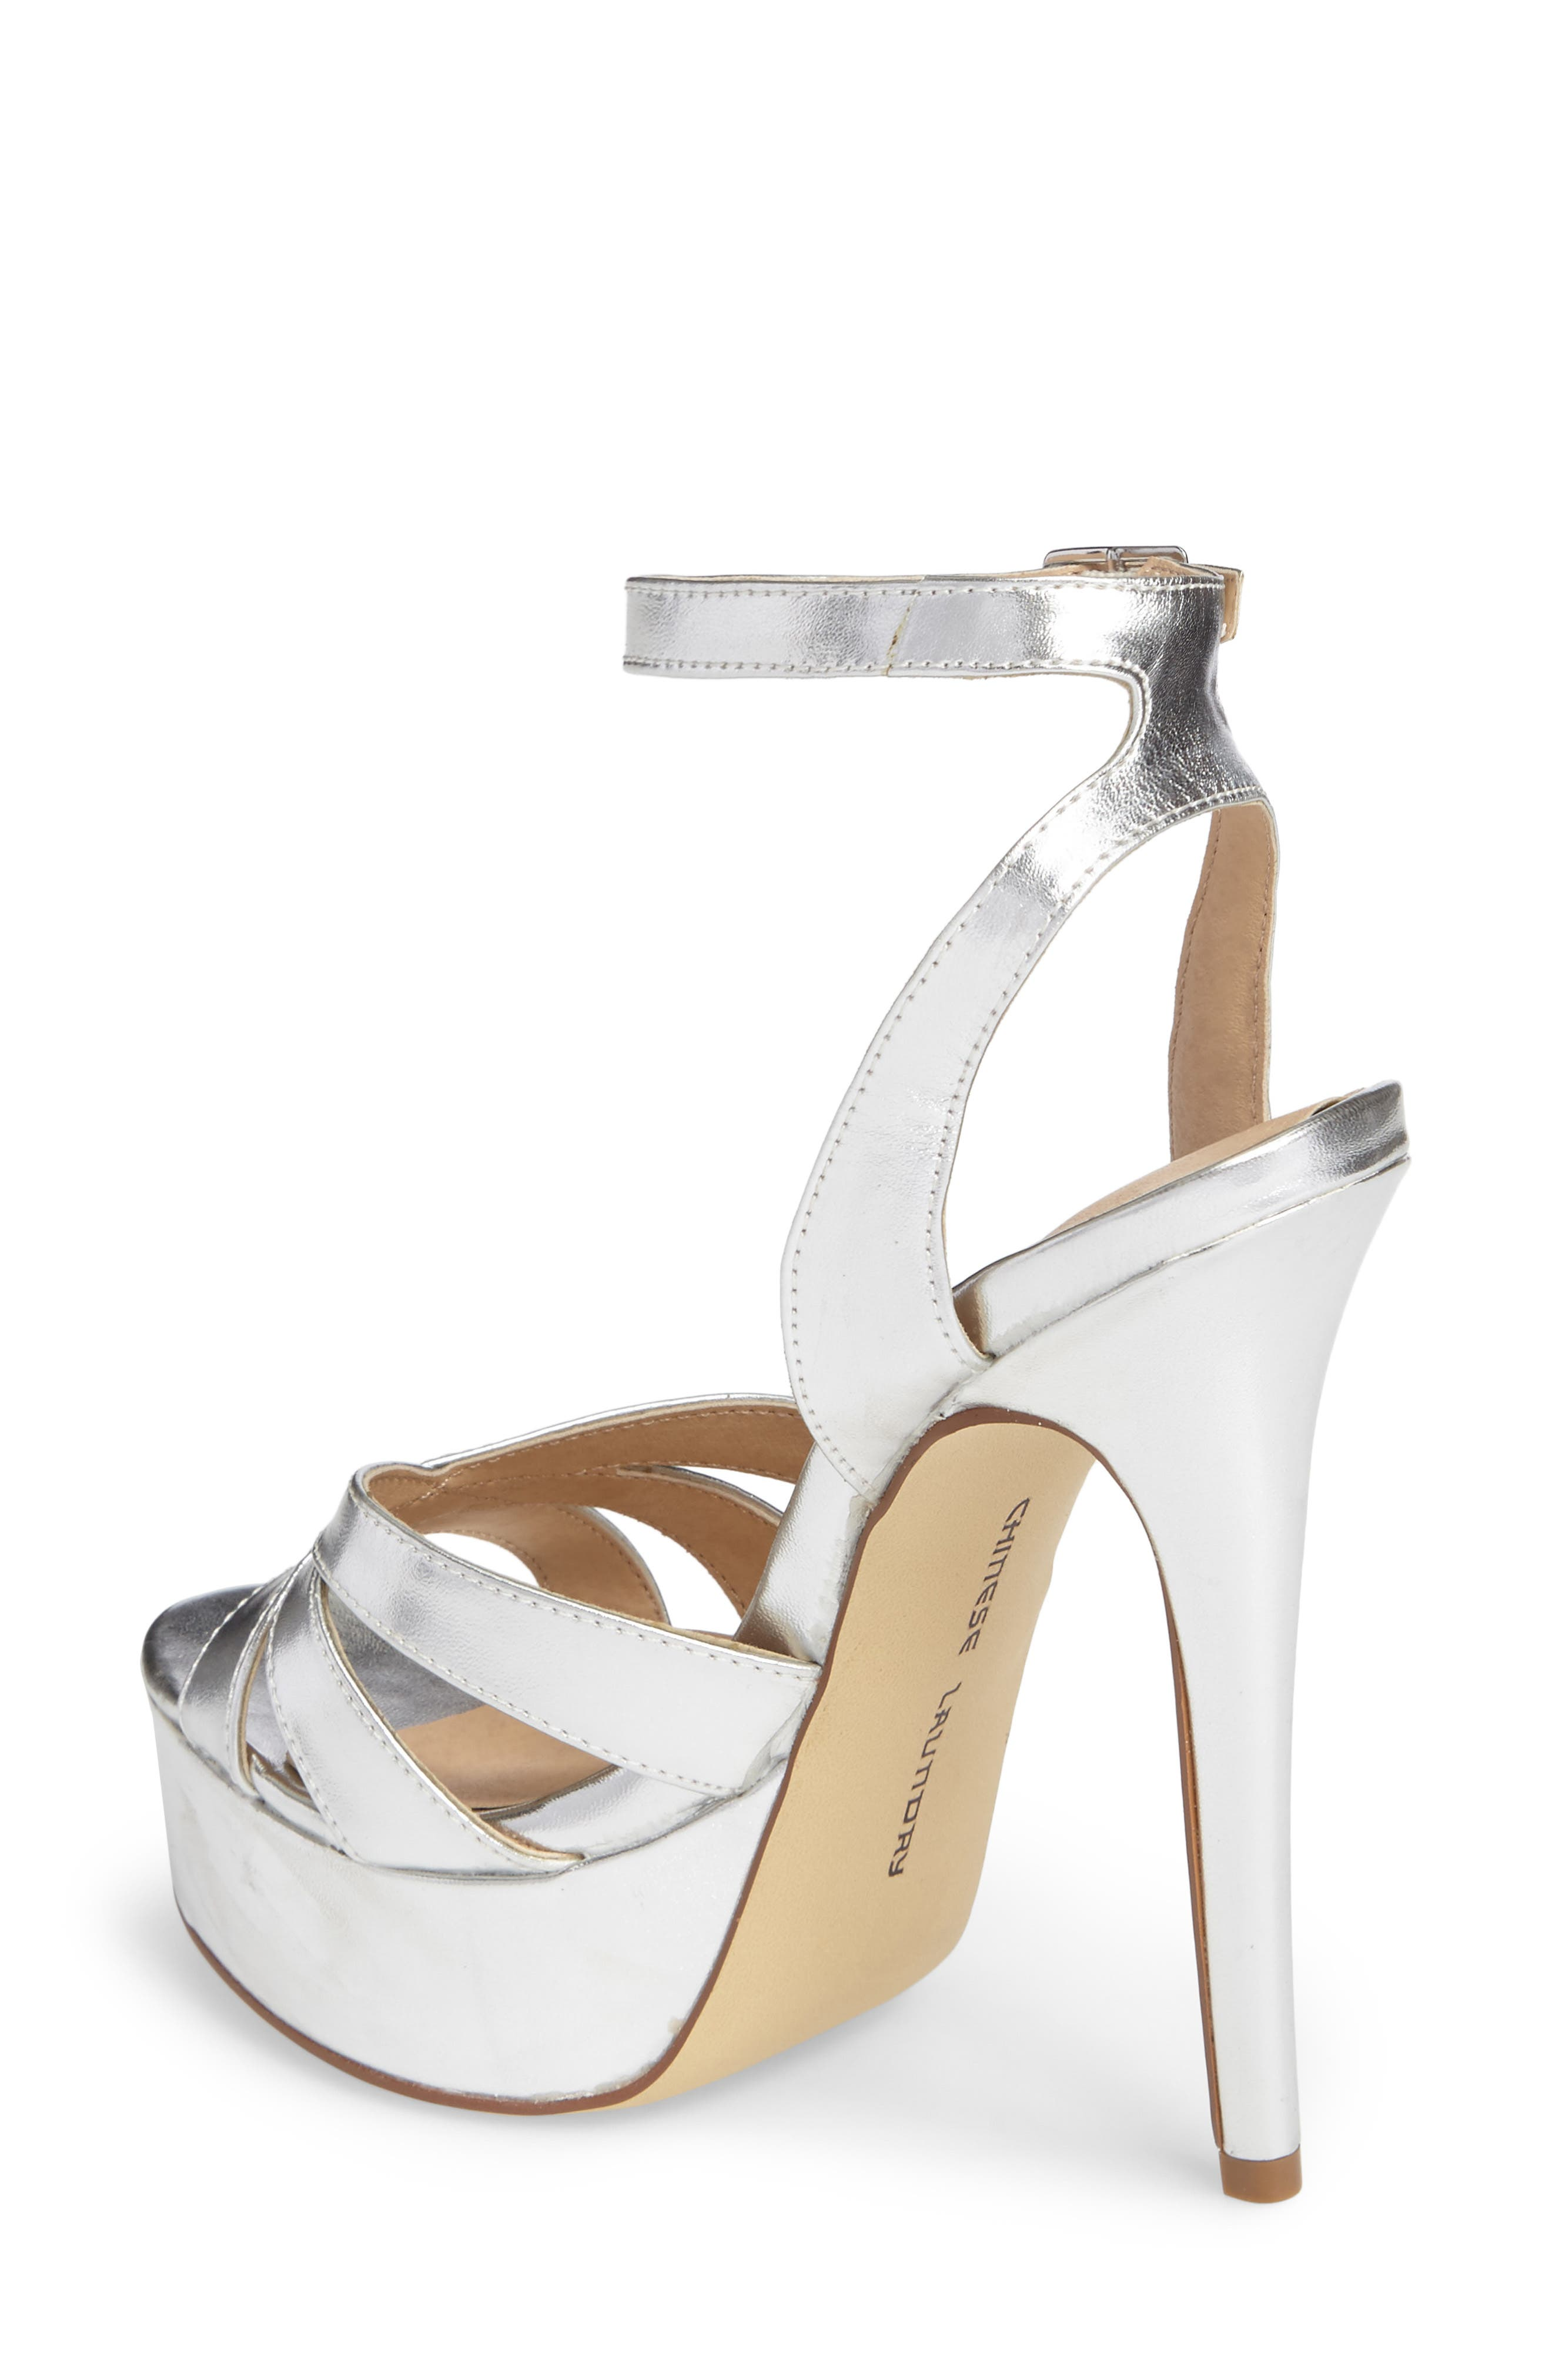 Alyssa Strappy Platform Sandal,                             Alternate thumbnail 2, color,                             040